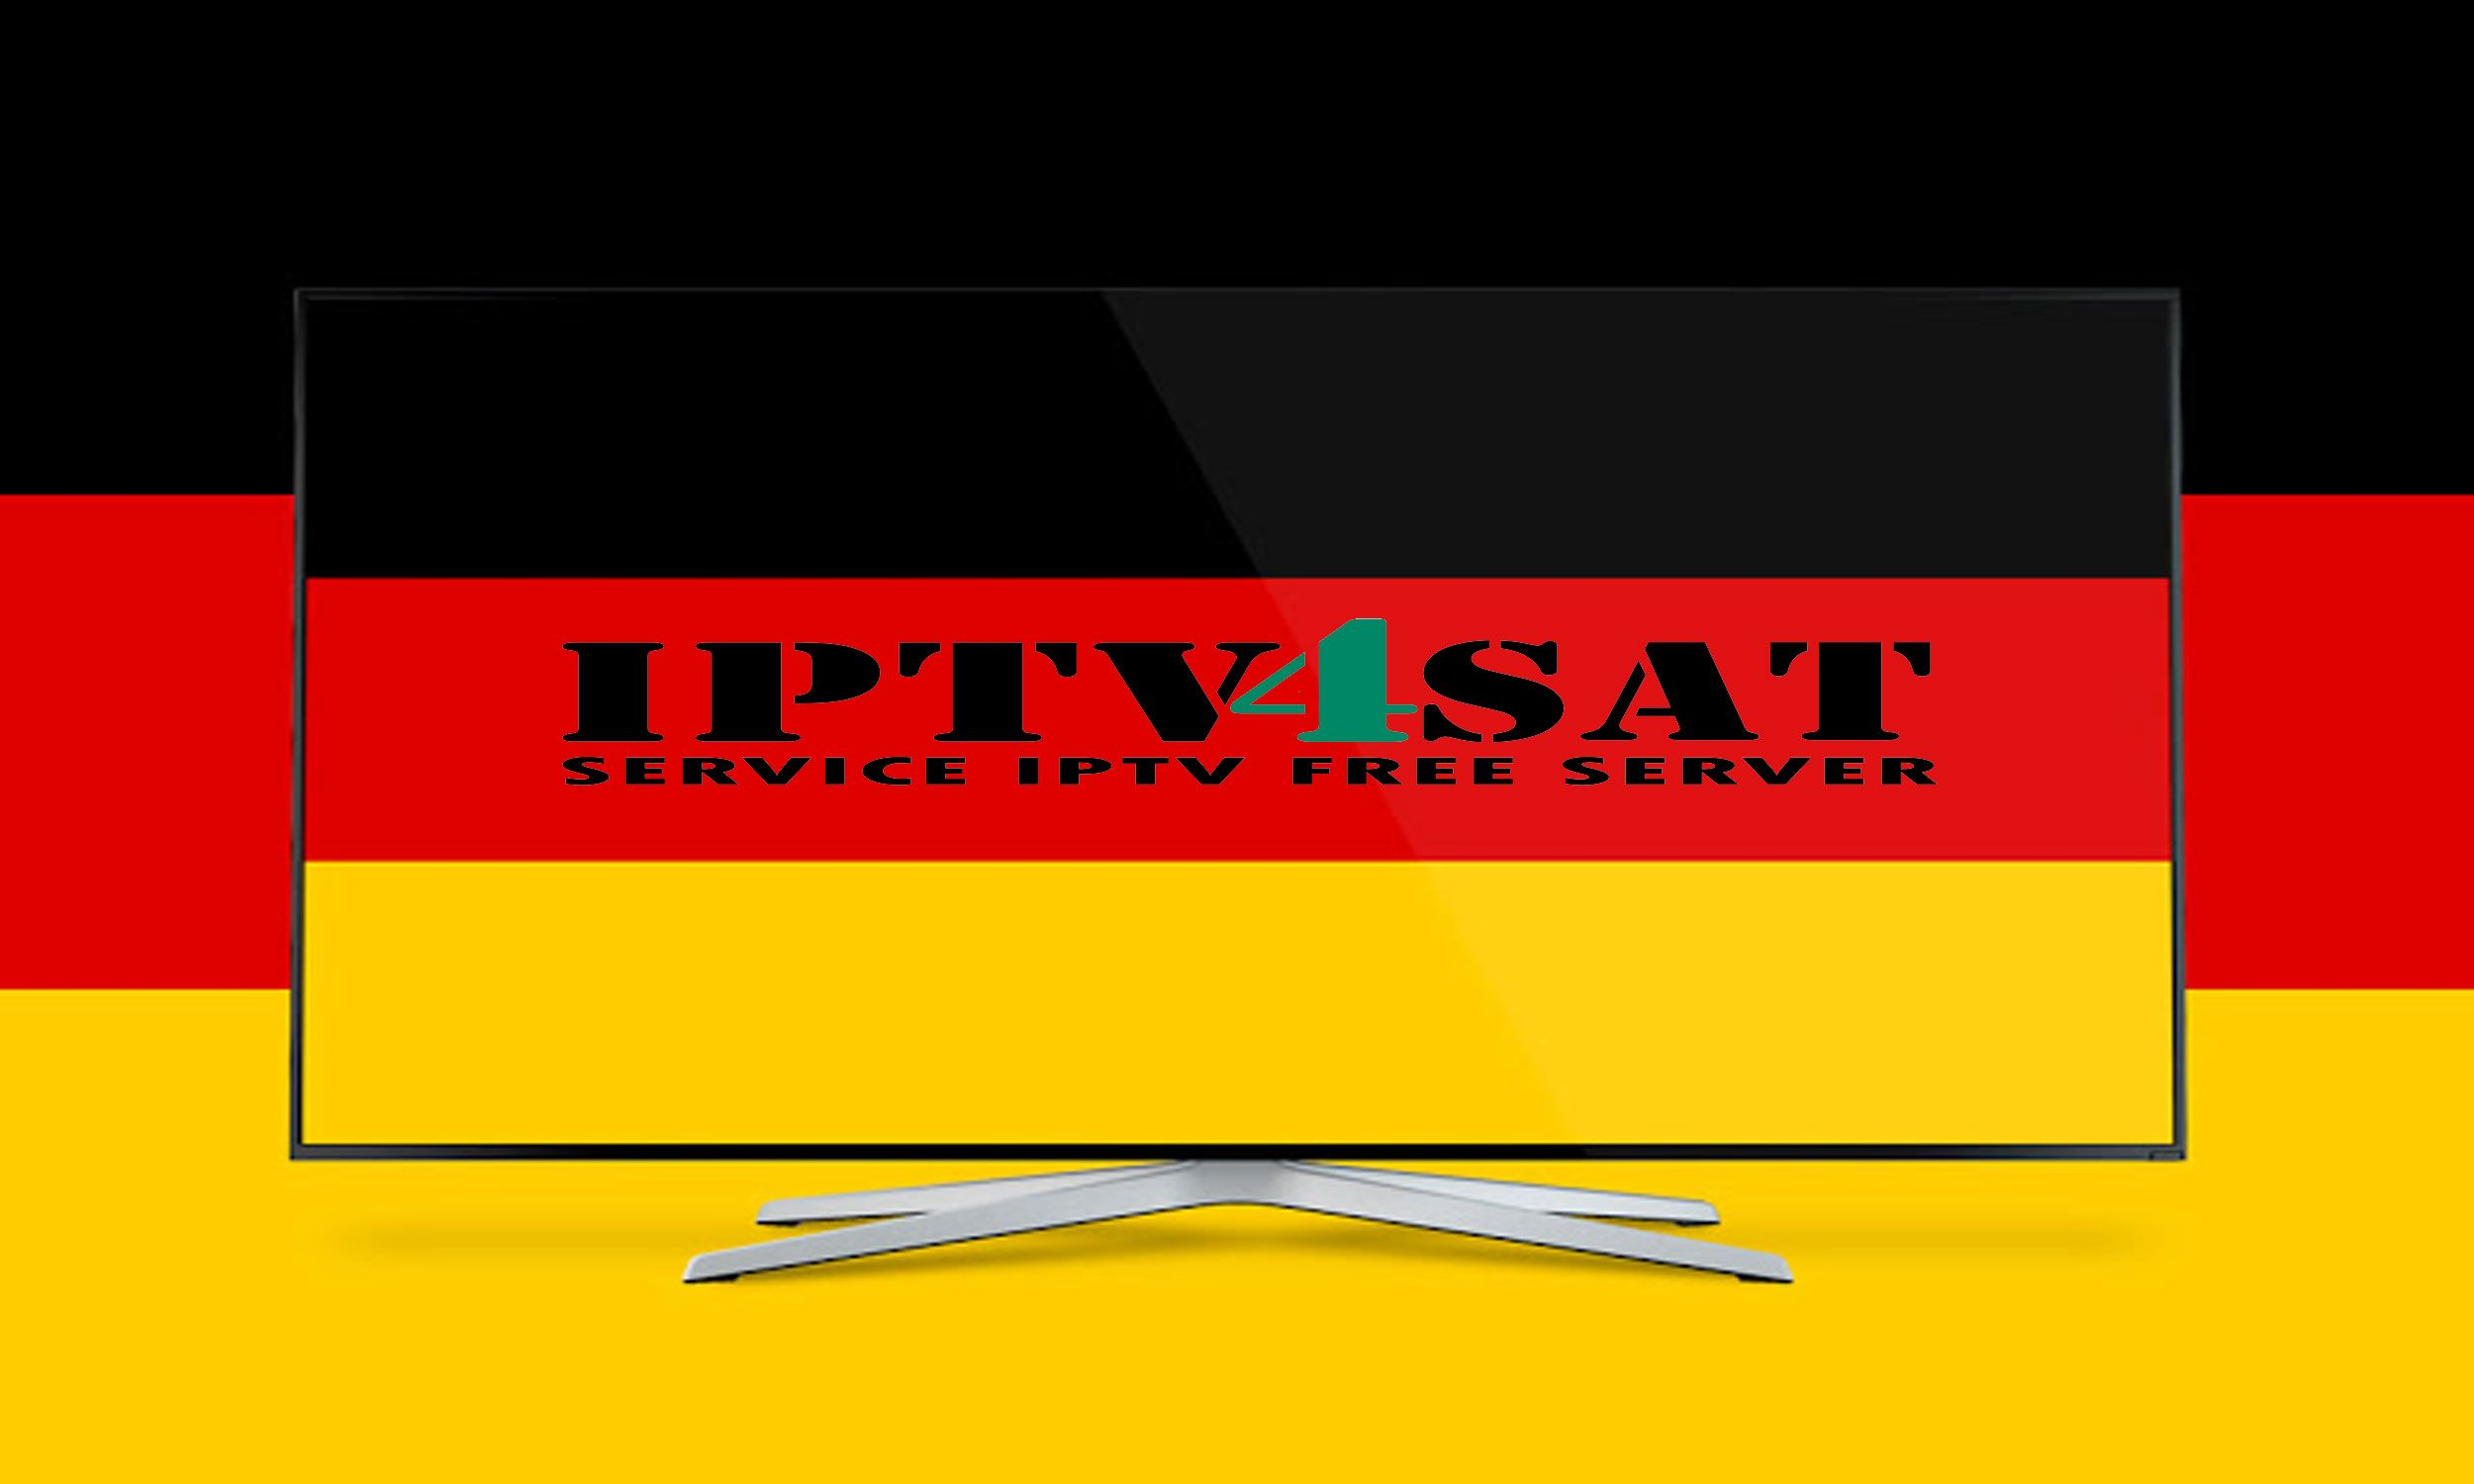 Server M3u File Germany Iptv Playlist 24/12/2018 iptv4sat iptv4sat